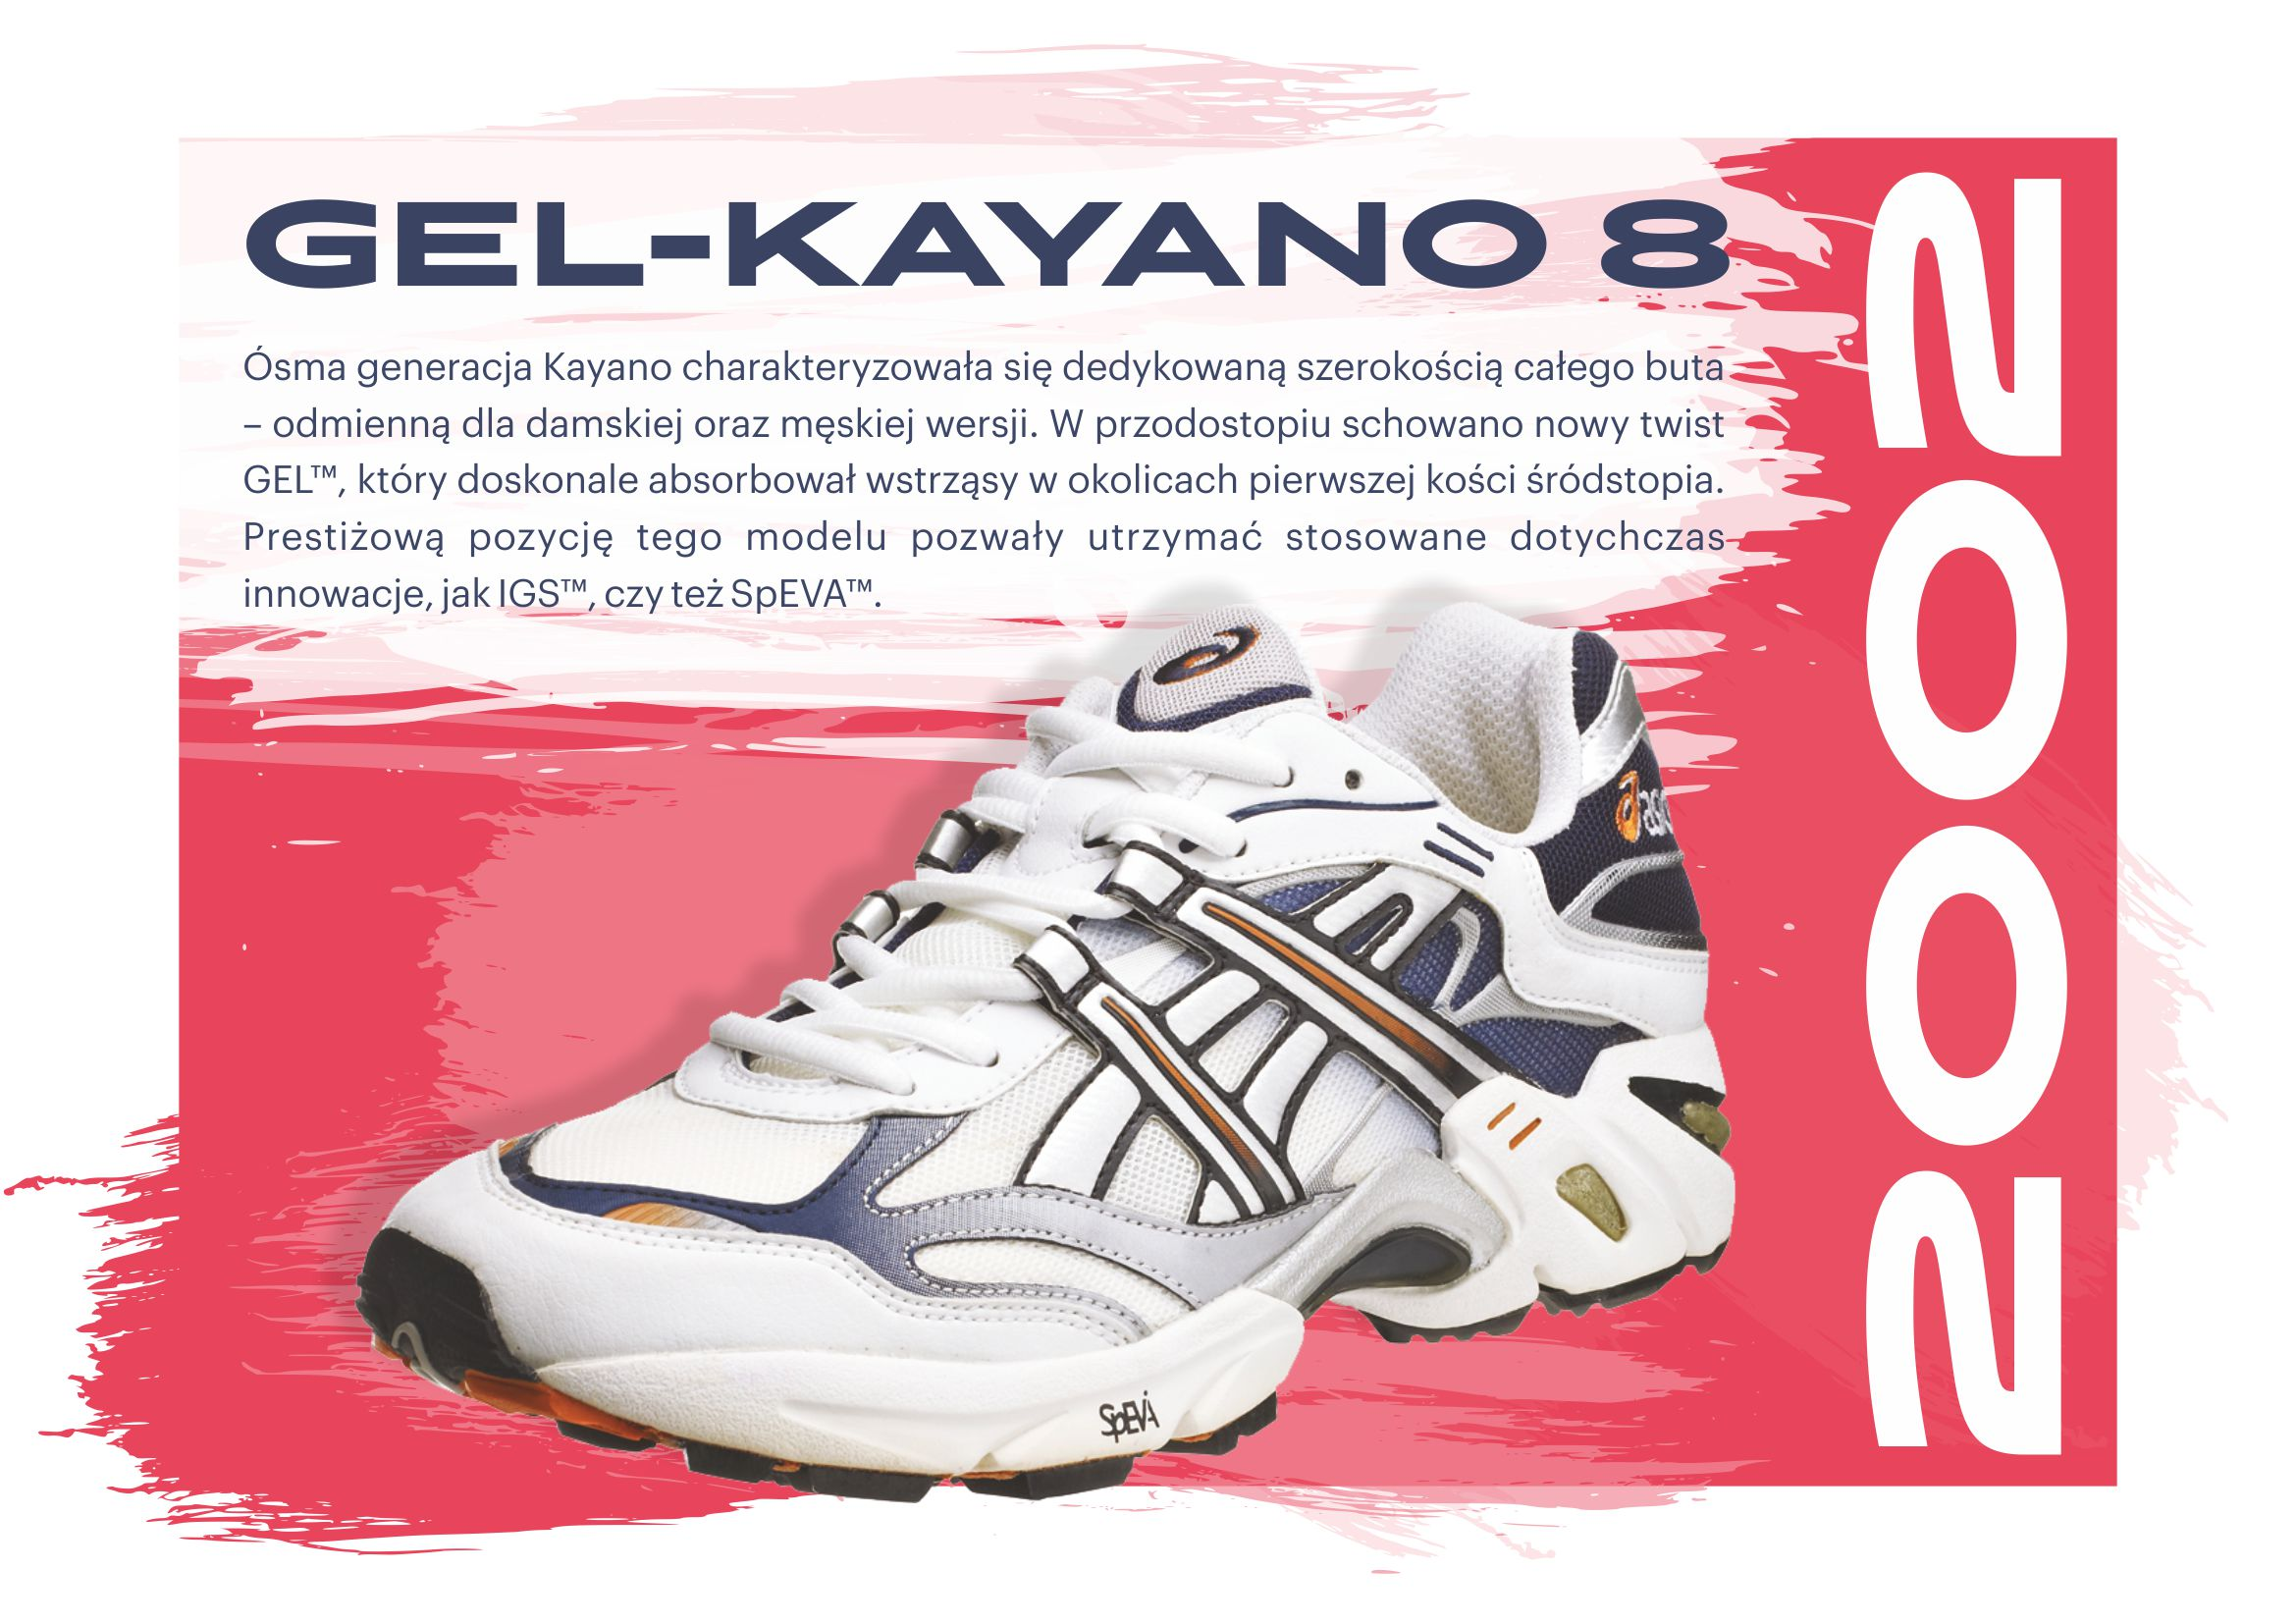 Asics Gel Kayano 8